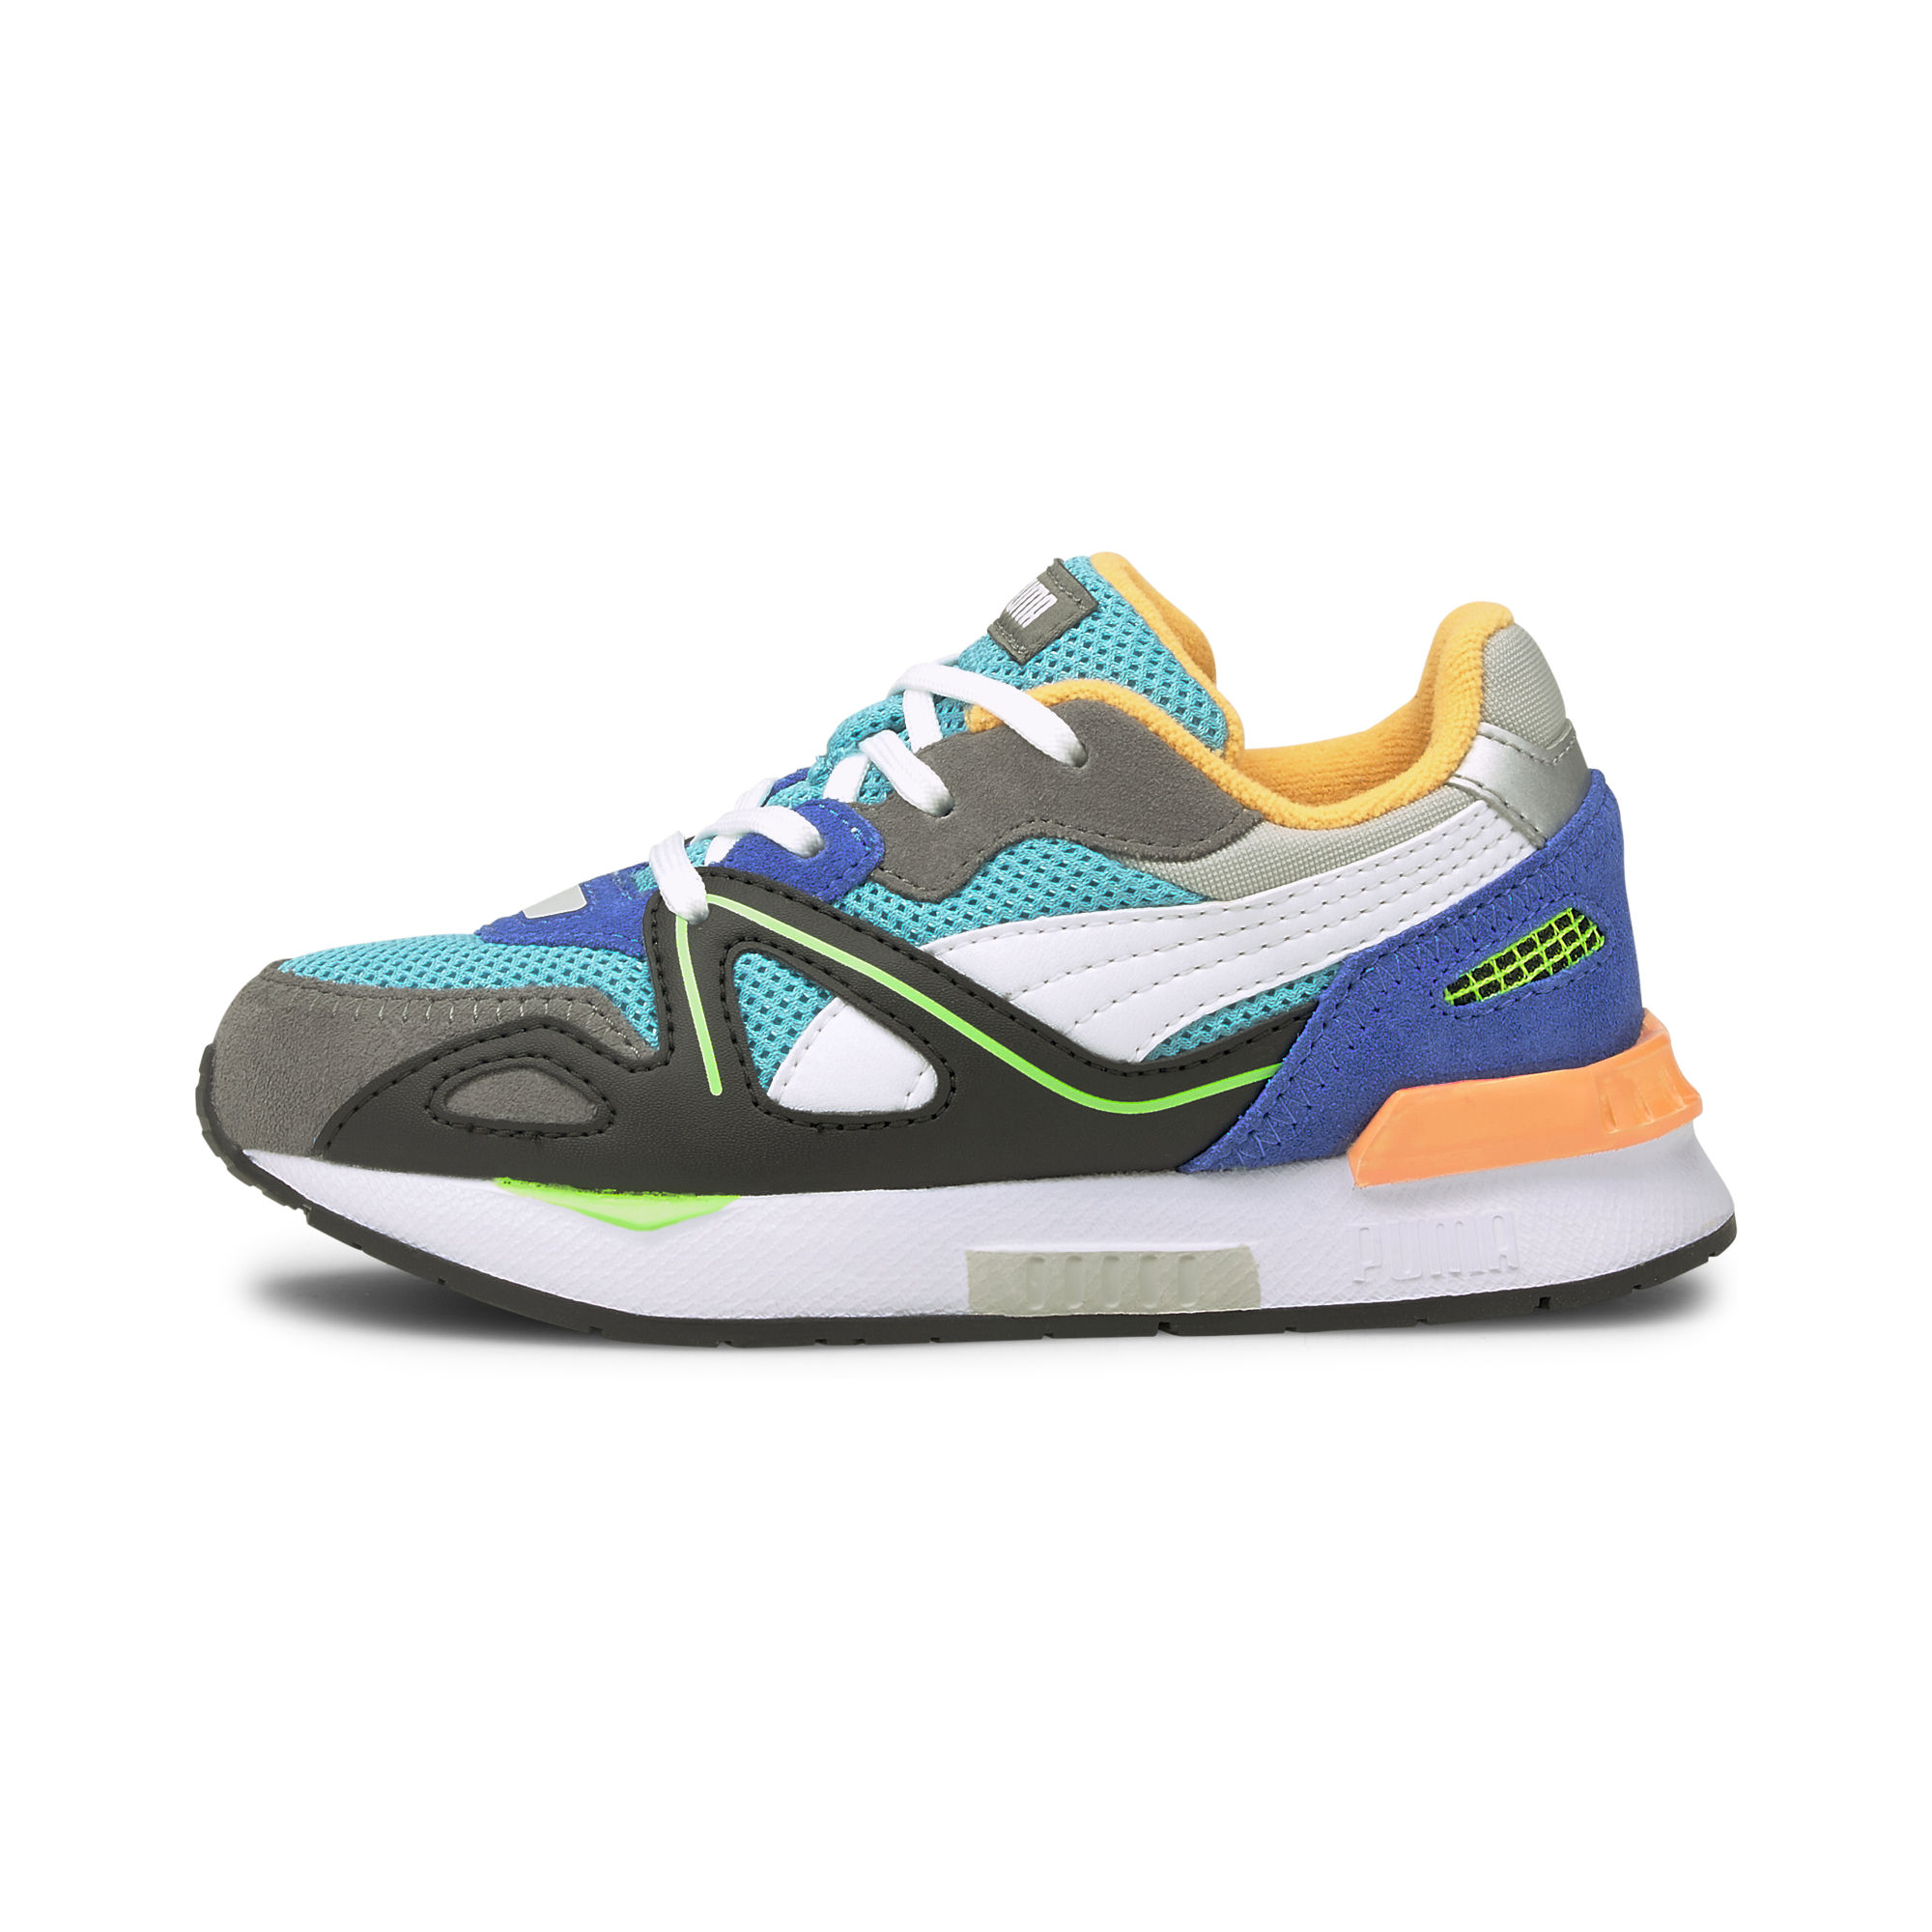 Puma Mirage Mox Vision PS sneakers, blue atoll-steel gray, 33